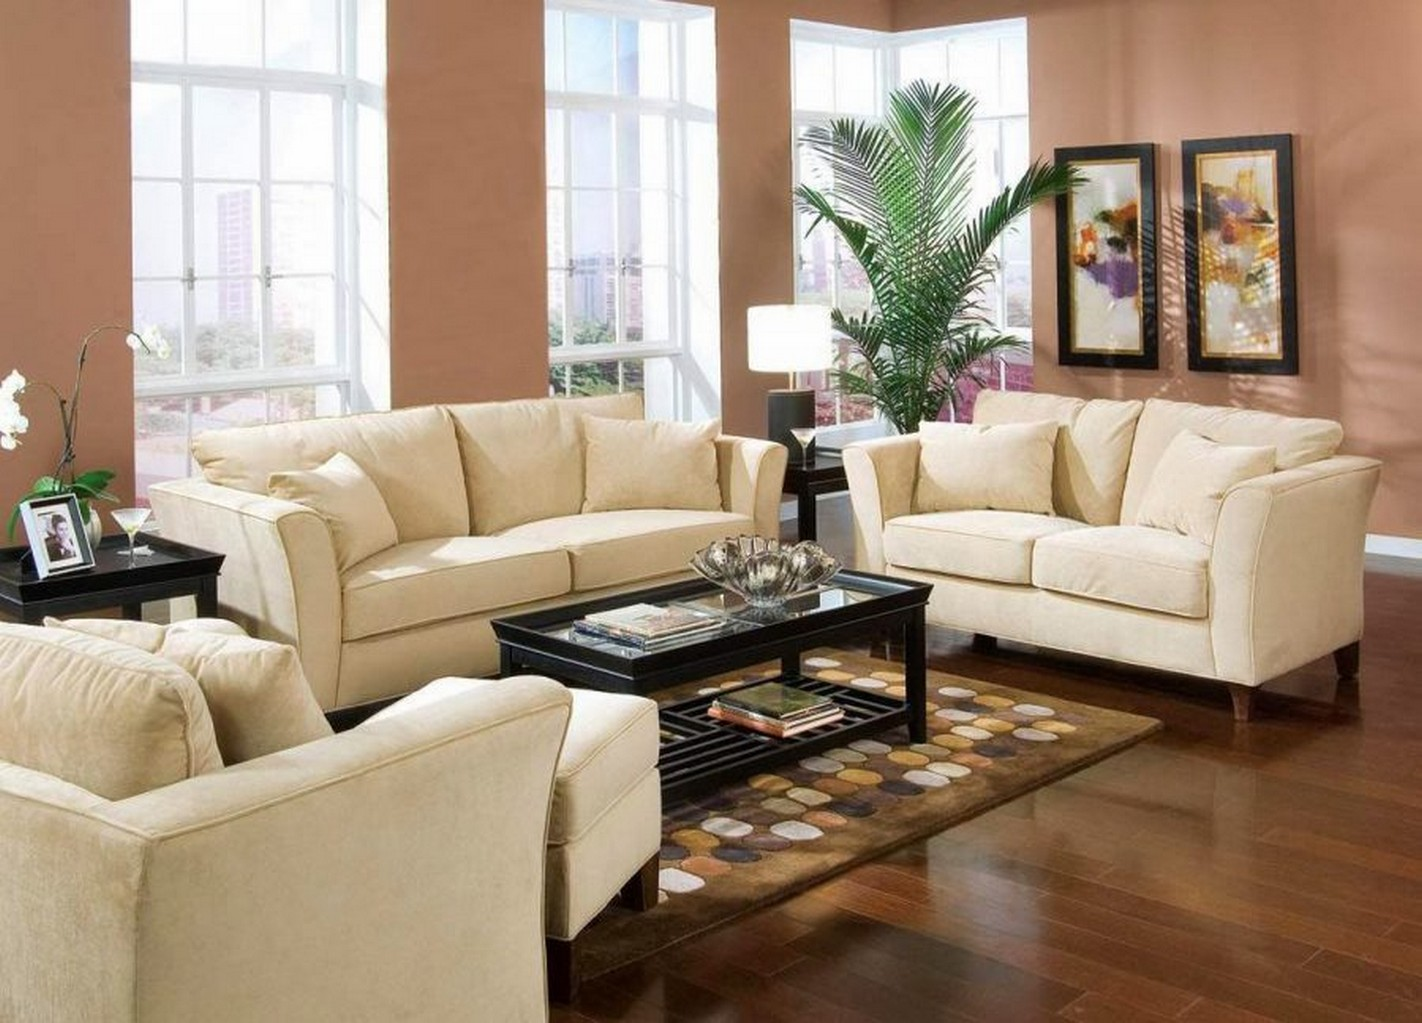 Small living room furniture ideas felish home project Compact living room furniture designs